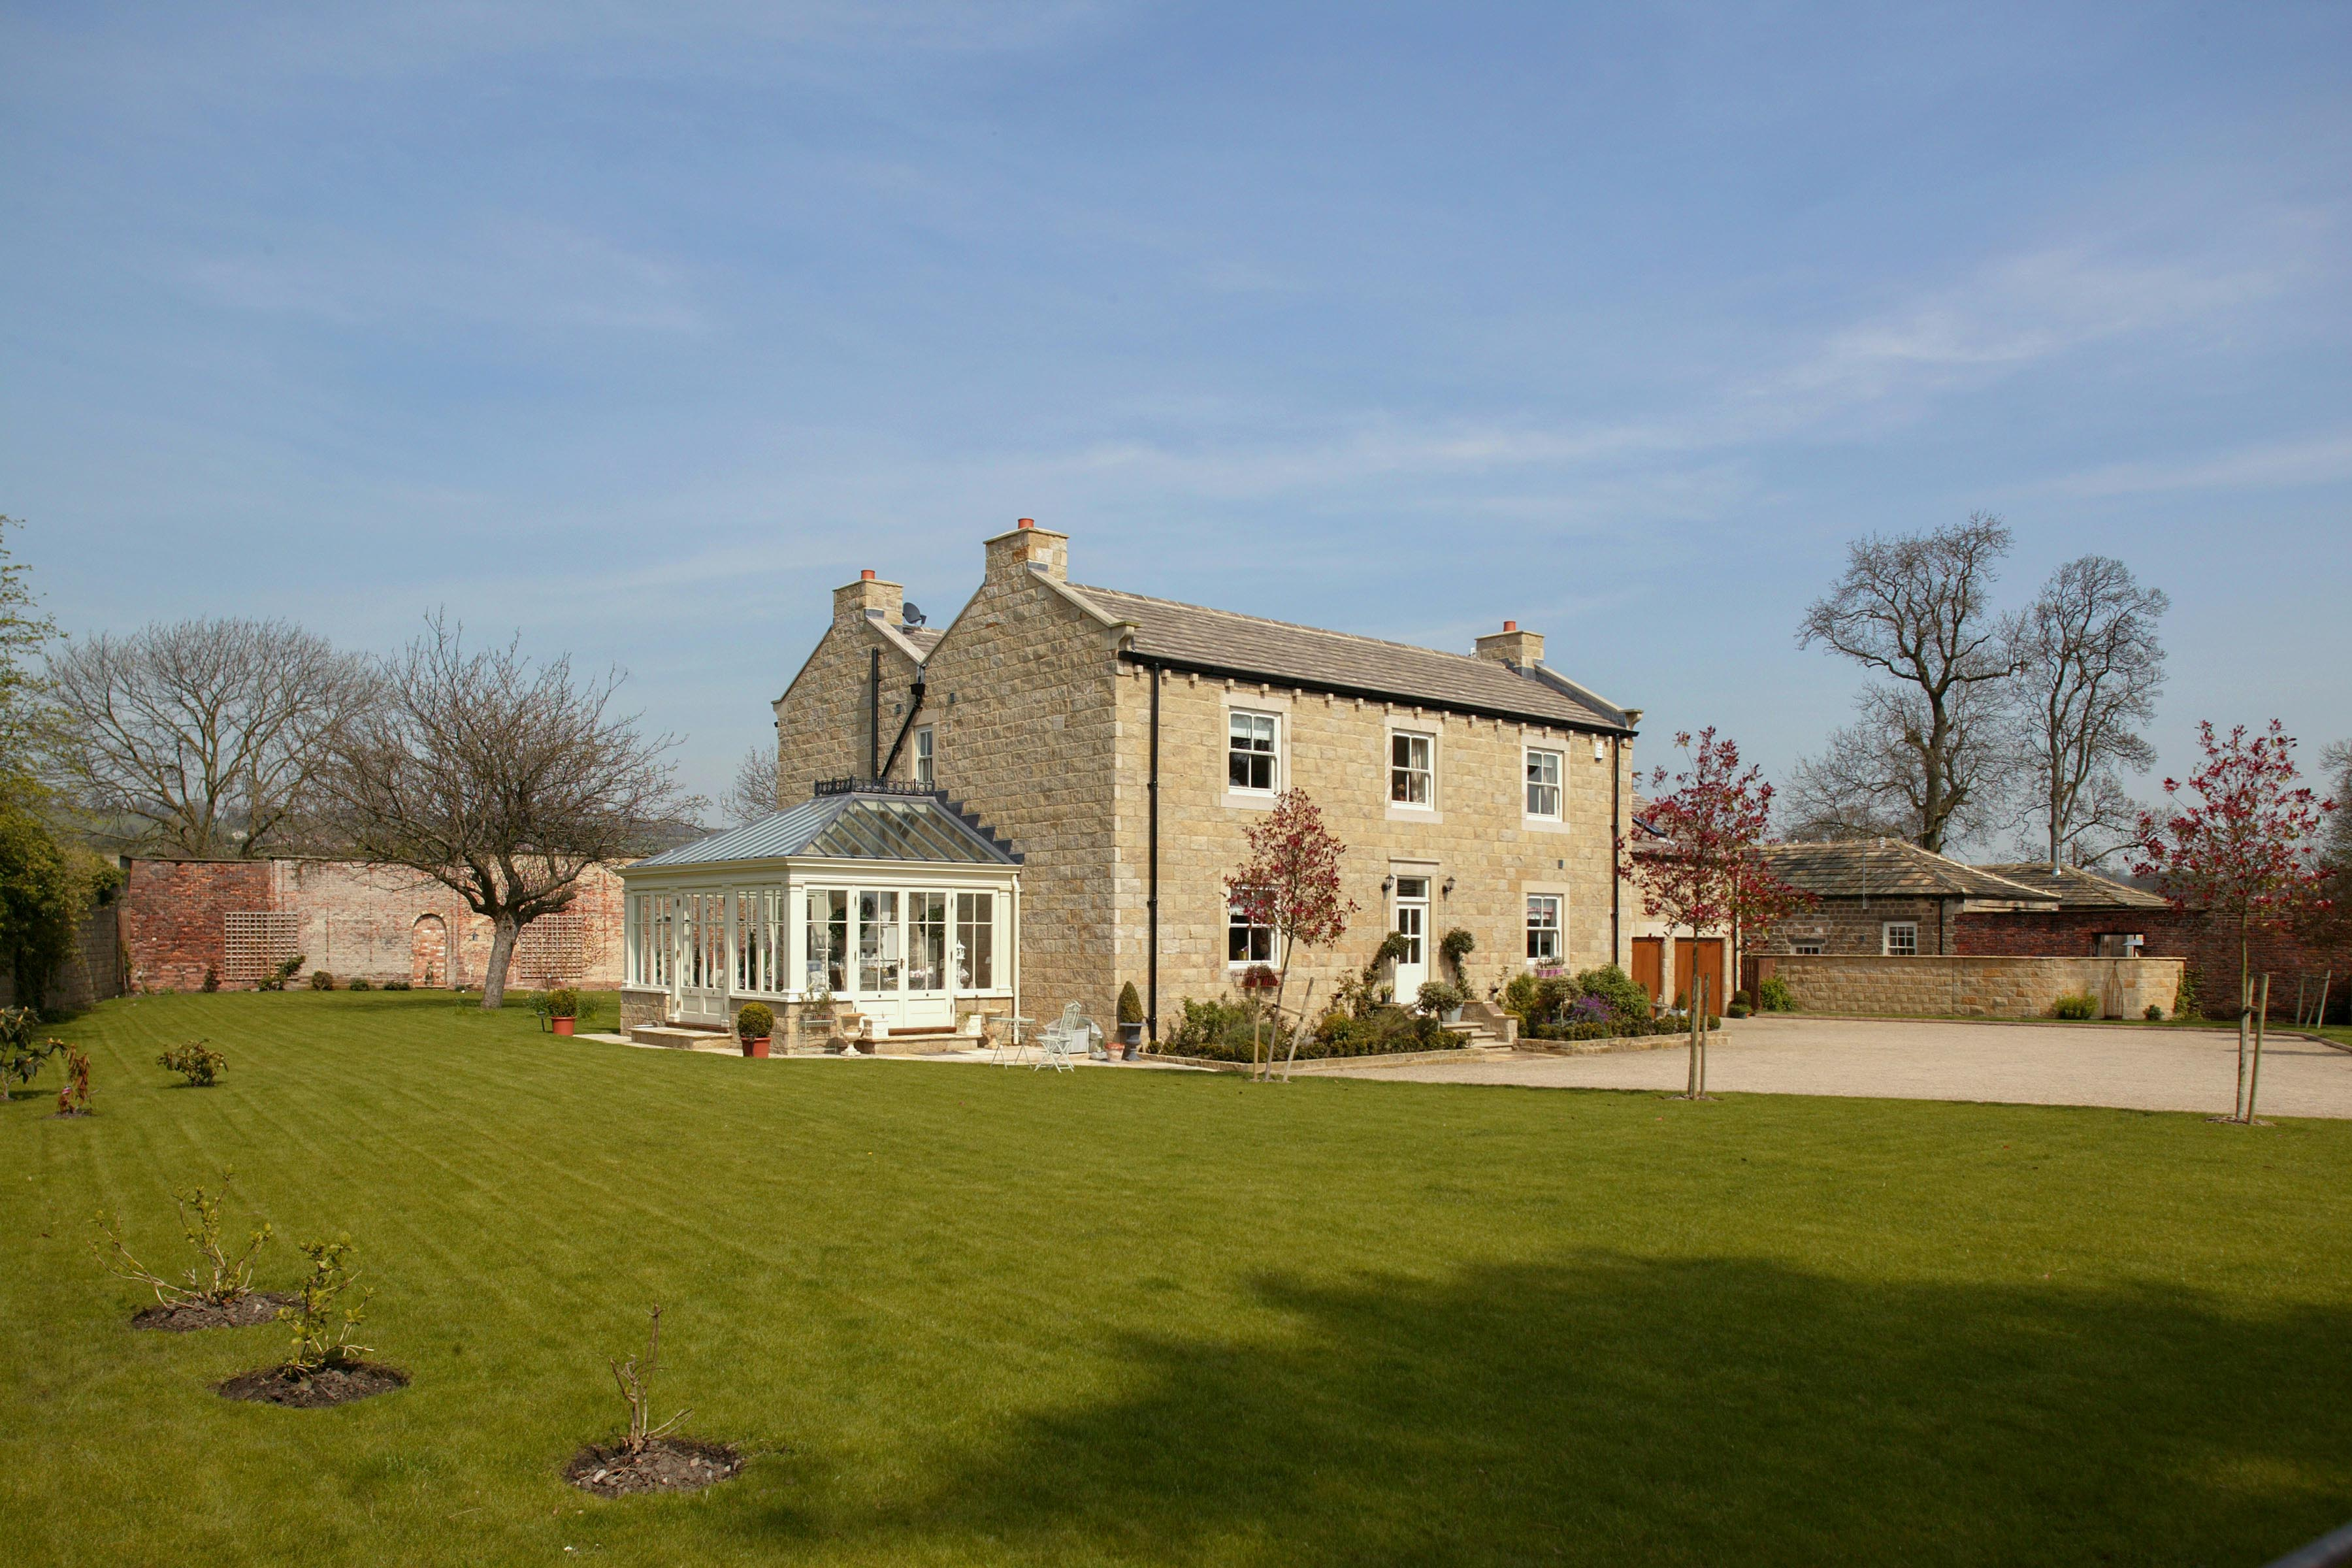 Erkulis | Ashfield Park Otley, New Build in the Grade II Listed buildings grounds